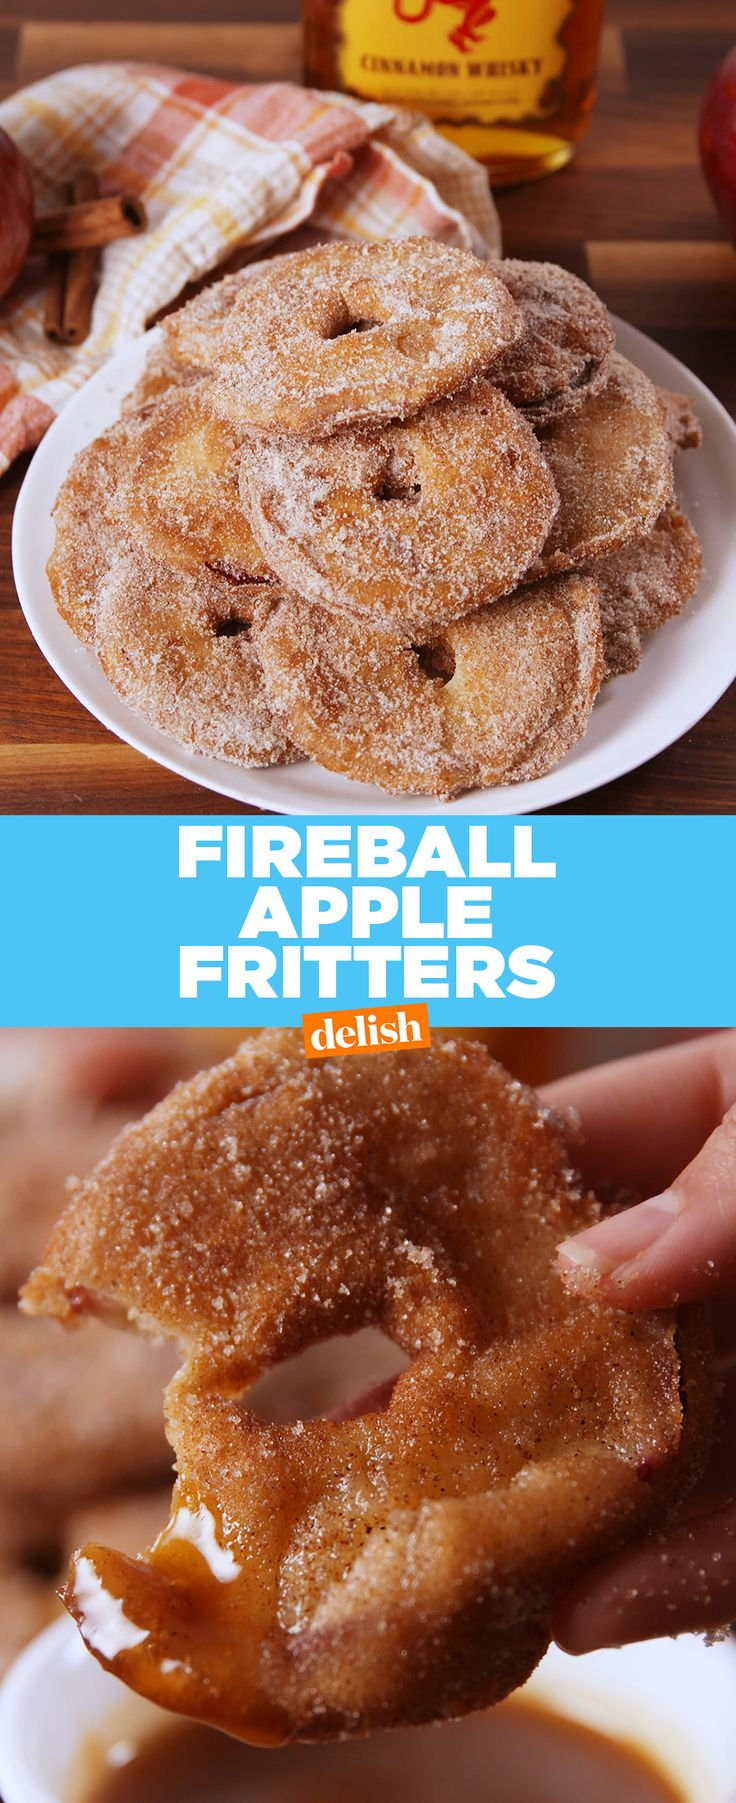 Fireball + apples = boozy bliss. Get the recipe from Delish.com.